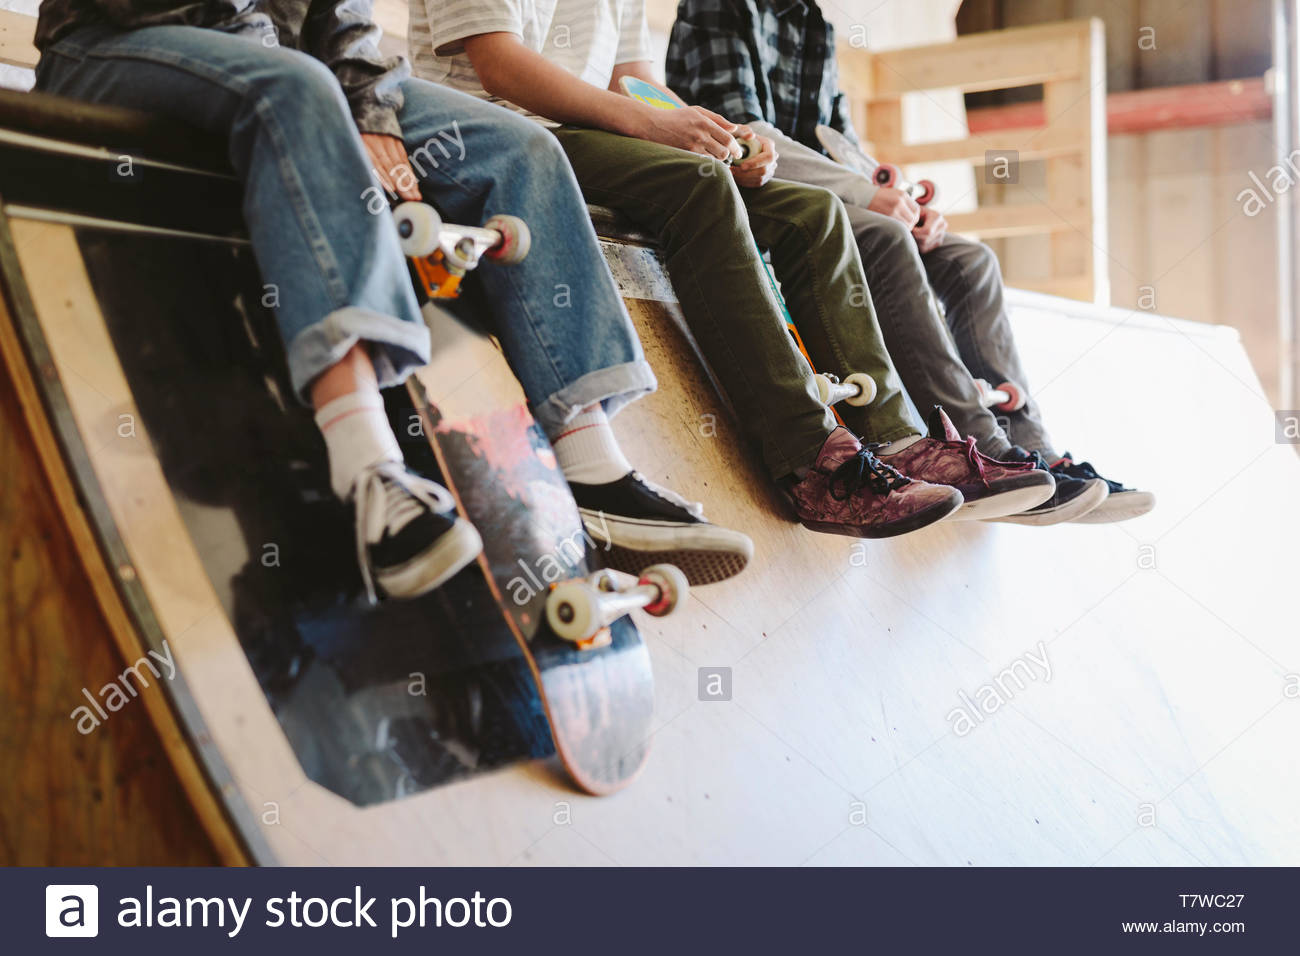 Friends hanging out, sitting at top of ramp at indoor skate park - Stock Image